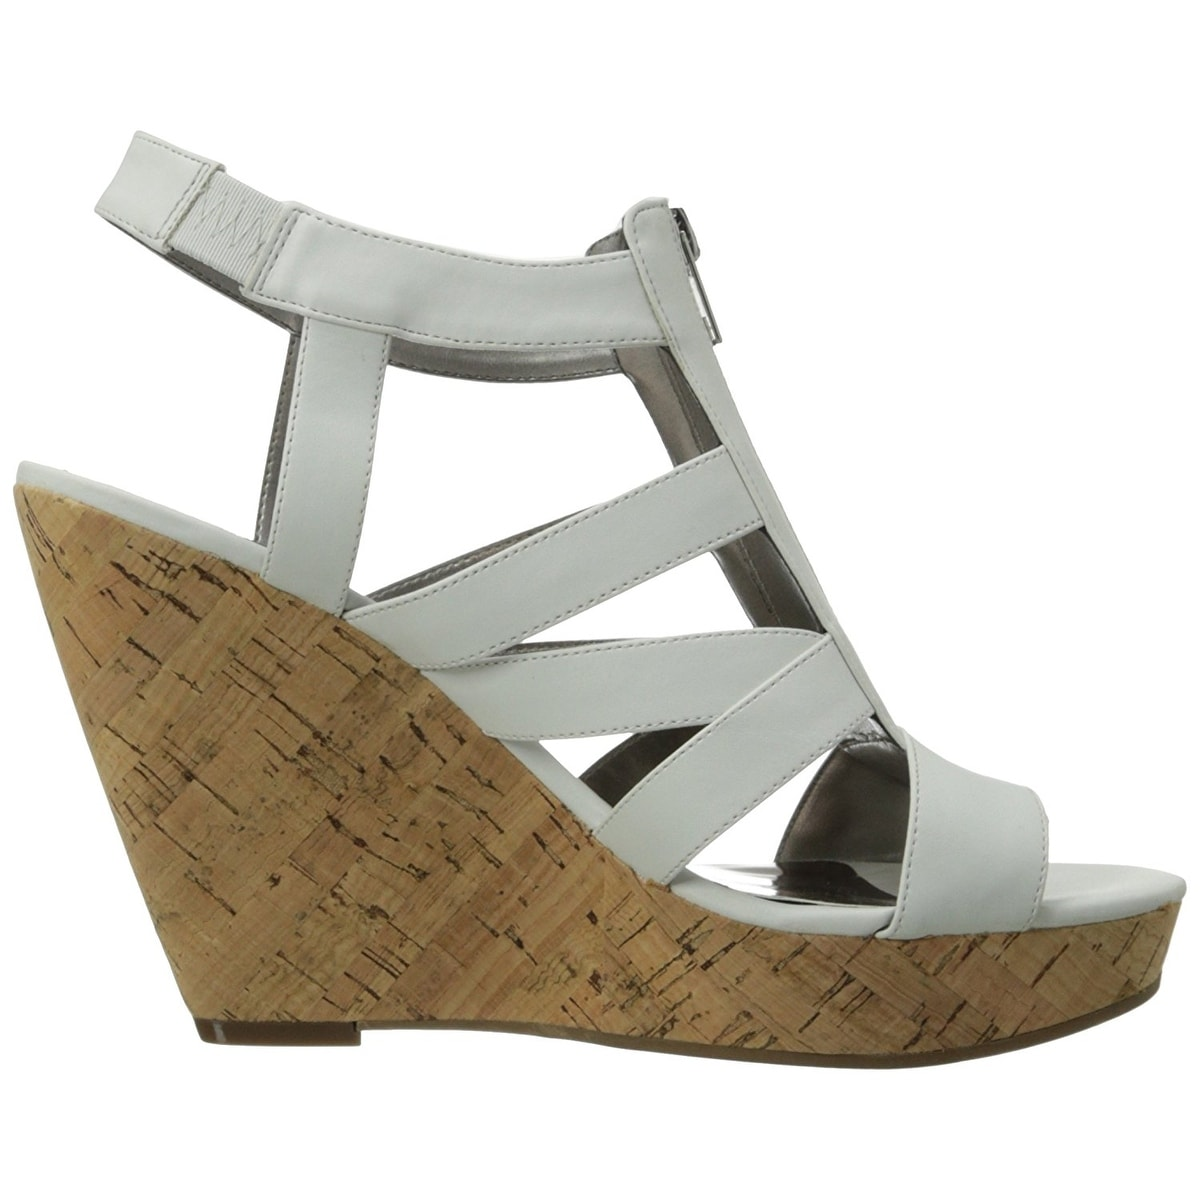 755ec727e2be Shop Carlos by Carlos Santana Womens Kaila Fabric Open Toe Casual Platform  Sandals - Free Shipping On Orders Over  45 - Overstock - 14537754